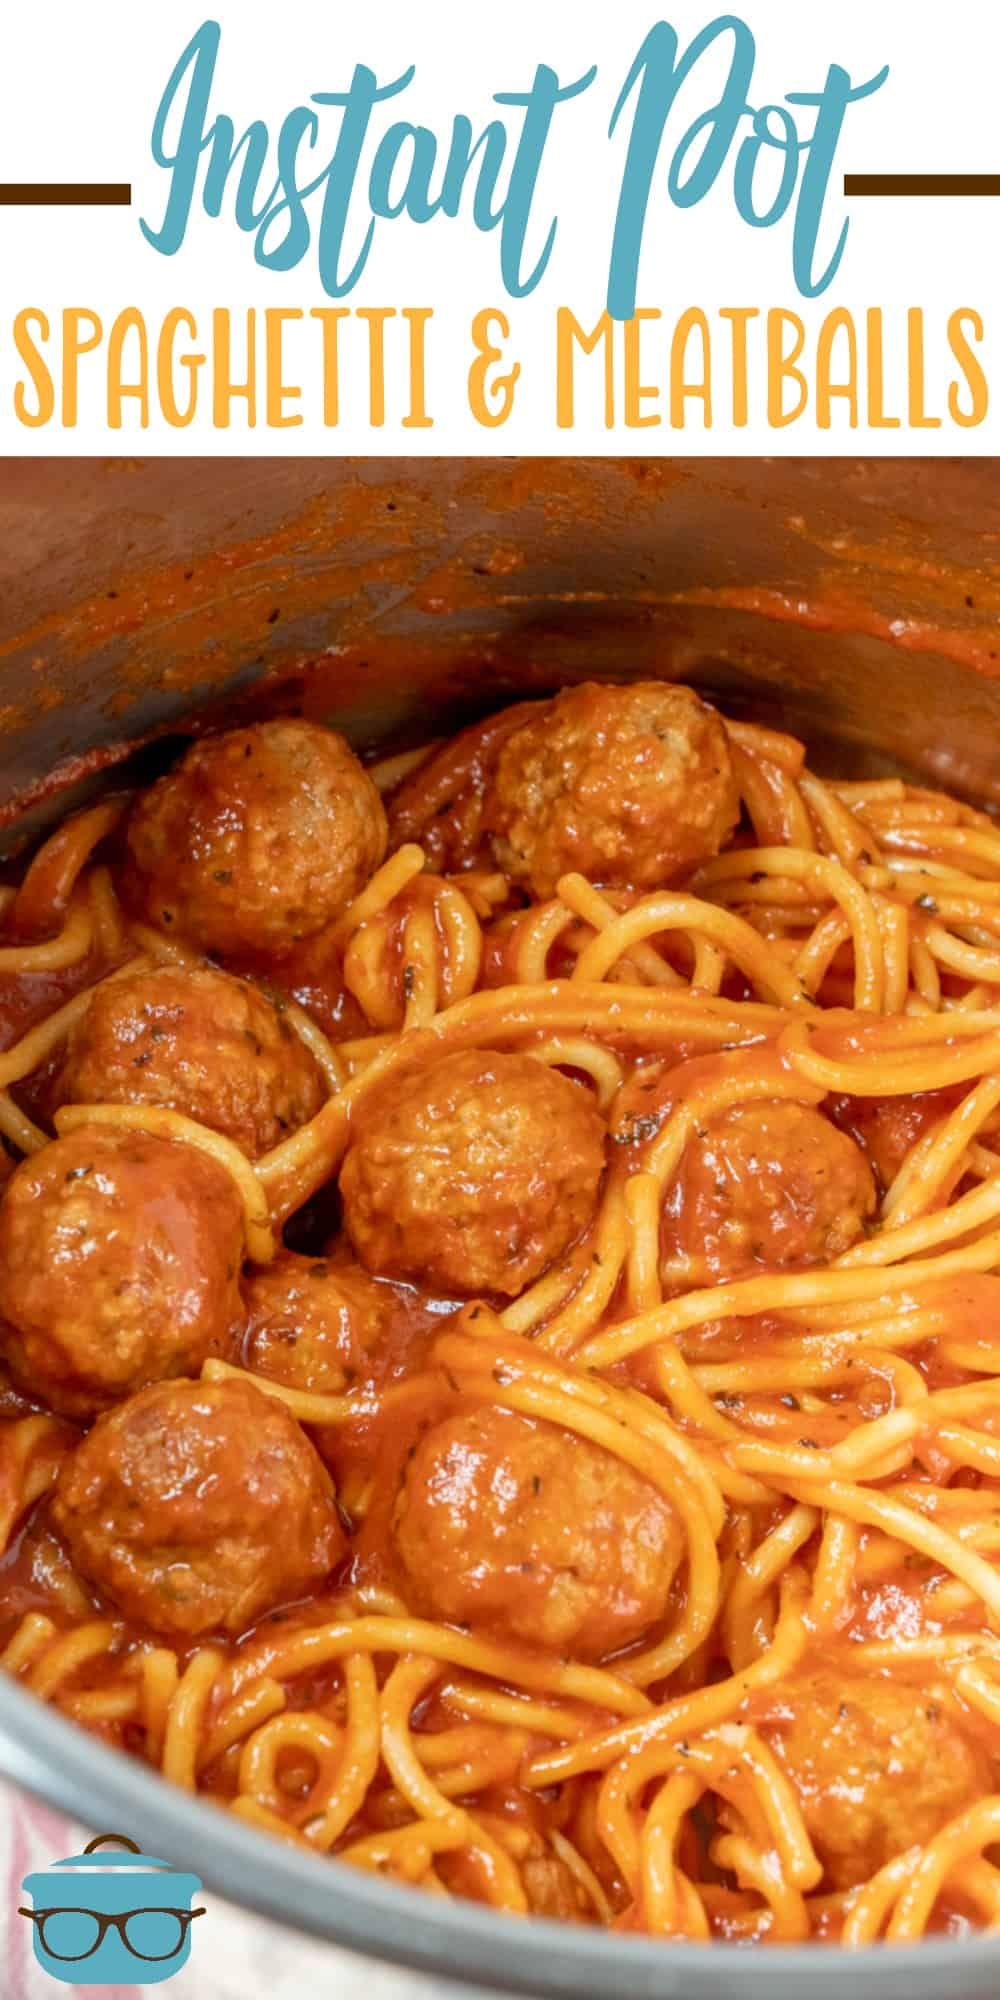 It only takes 5 ingredients to make this Easy Instant Pot Spaghetti and Meatballs! A delicious dinner will be ready in 30 minutes! #instantpot #dinner